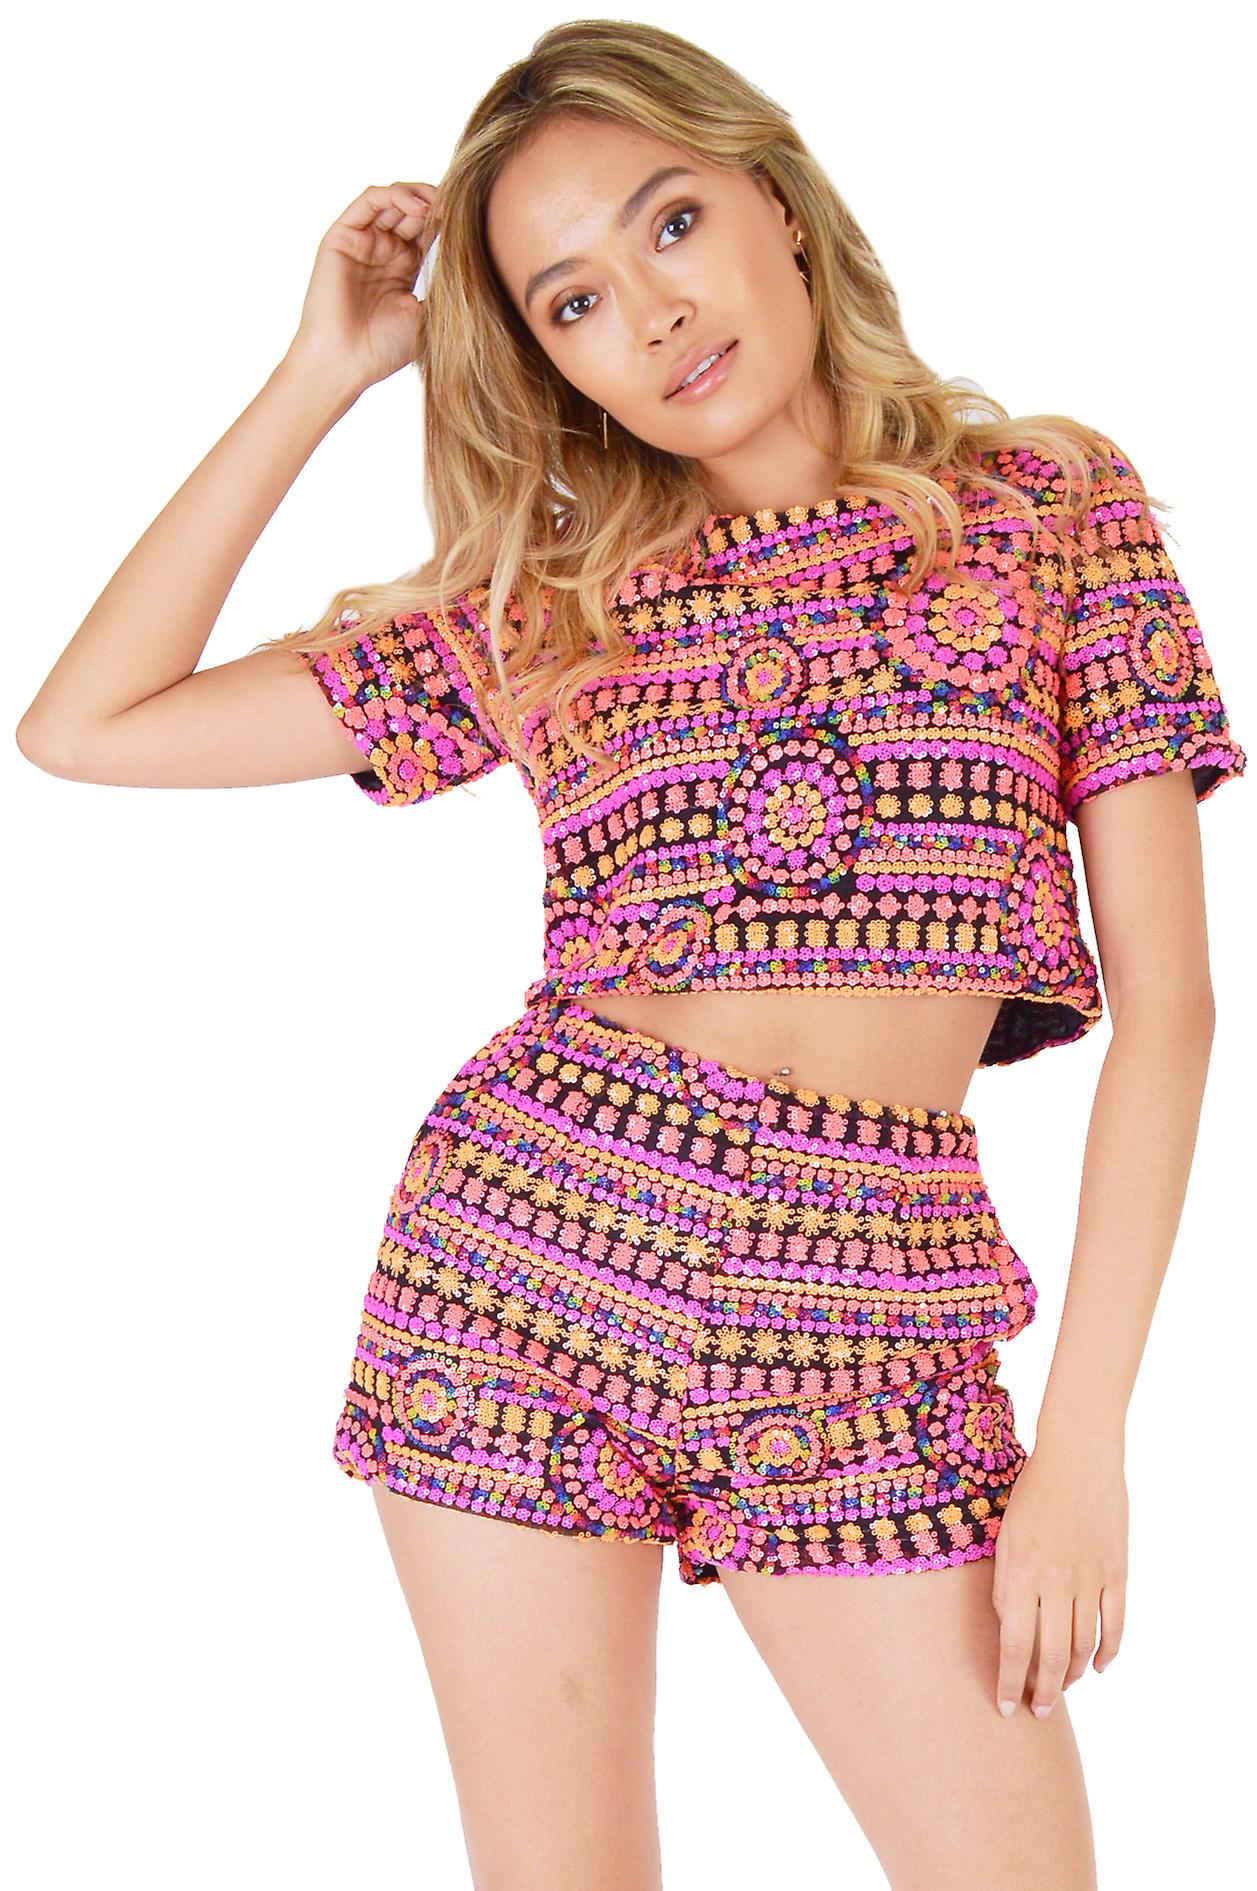 LYDC High Waisted Multi Coloured All Over Sequin Shorts